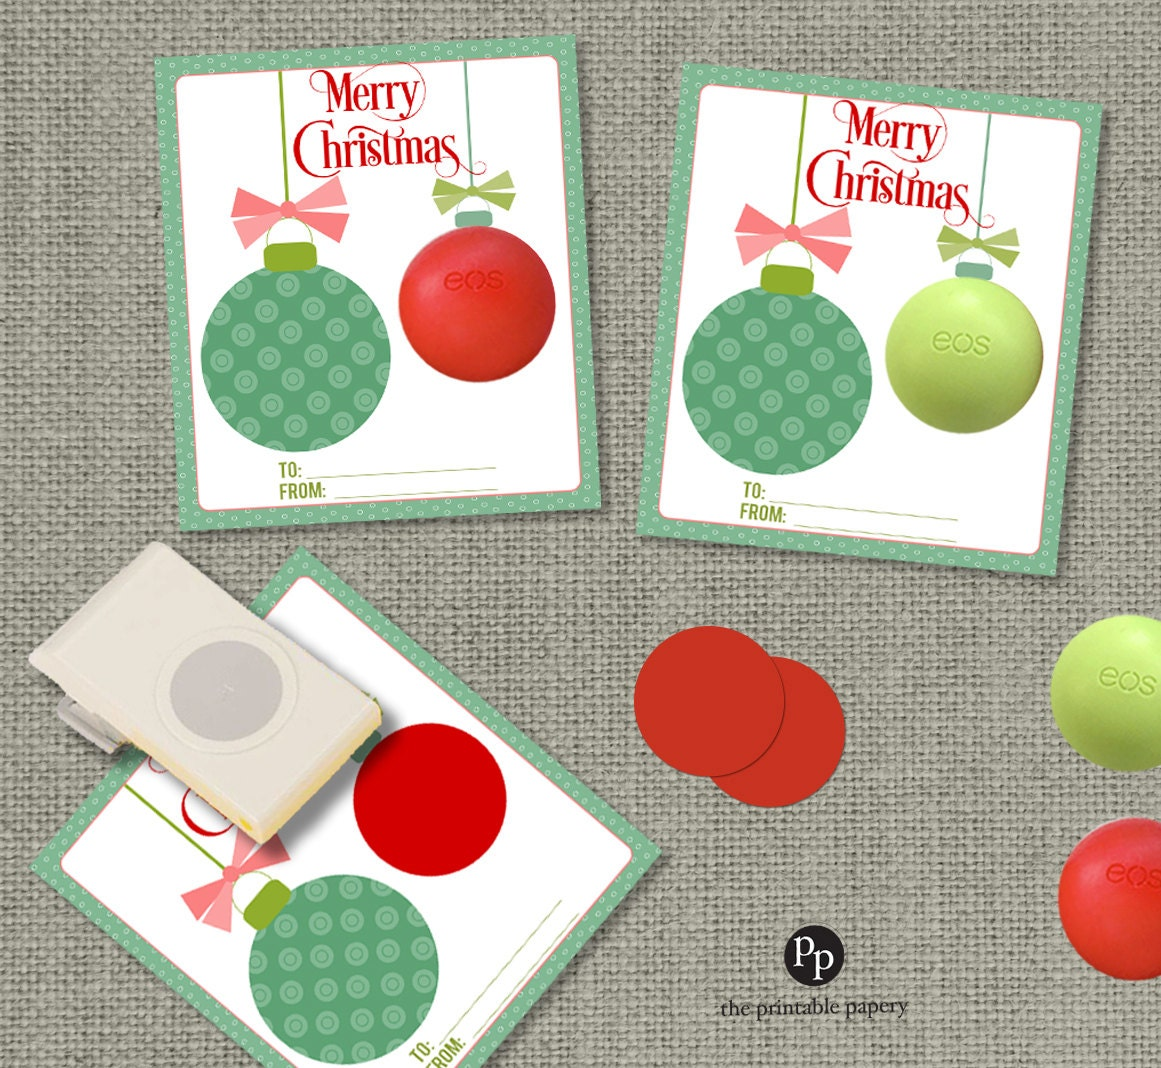 Holiday Christmas Cards / Gift Tags For EOS Lip Balm Gifts